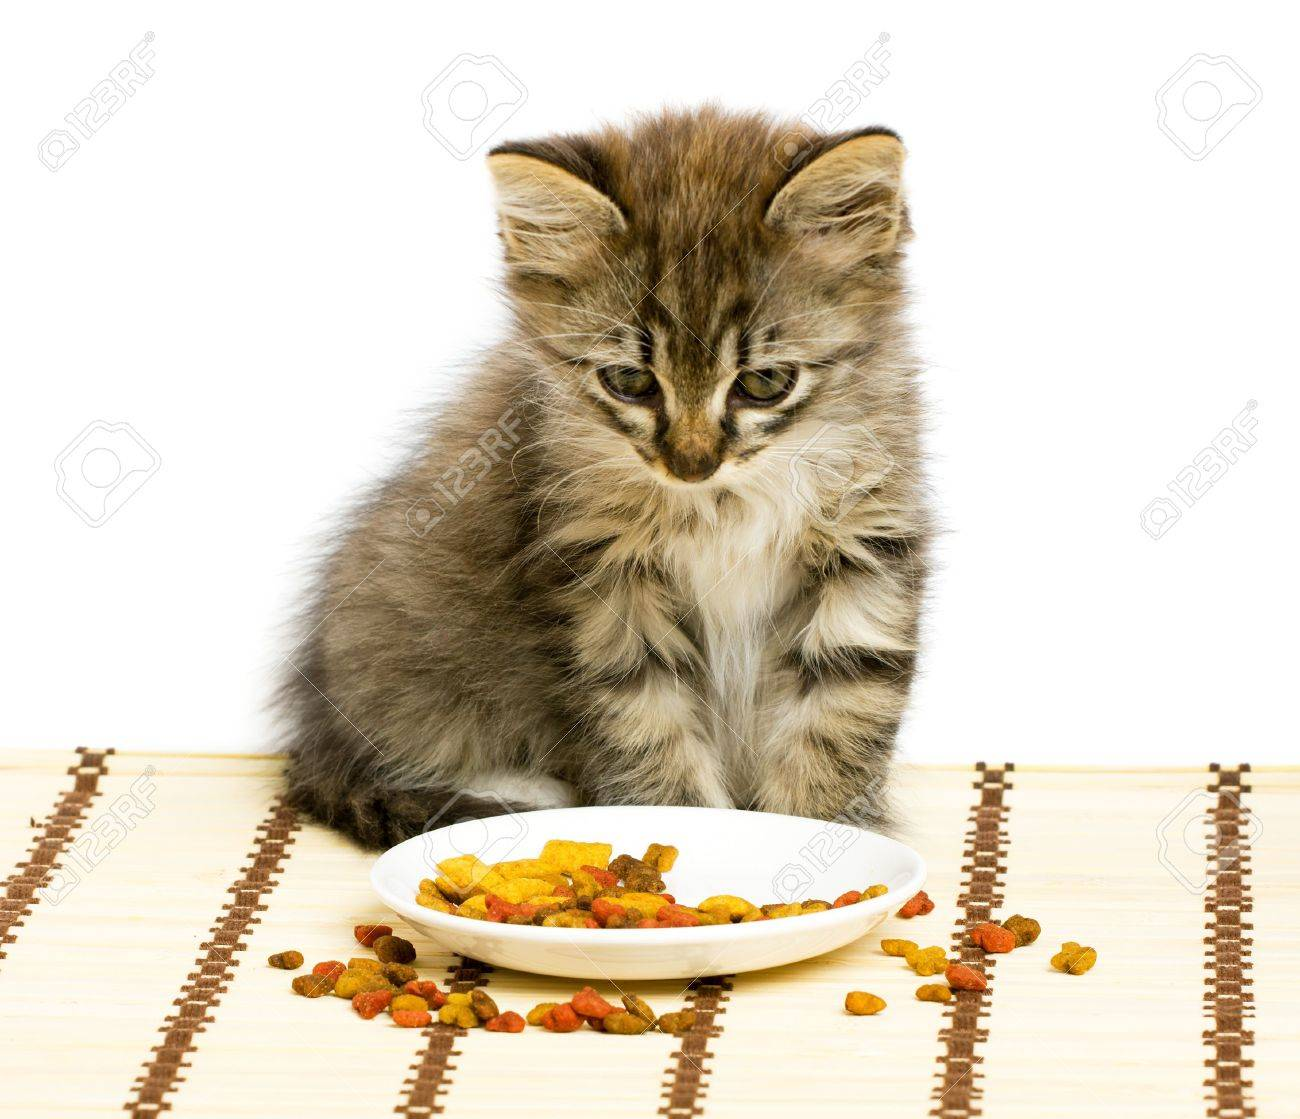 How Old Does A Kitten Have To Be Eat Dry Food All The Best Food